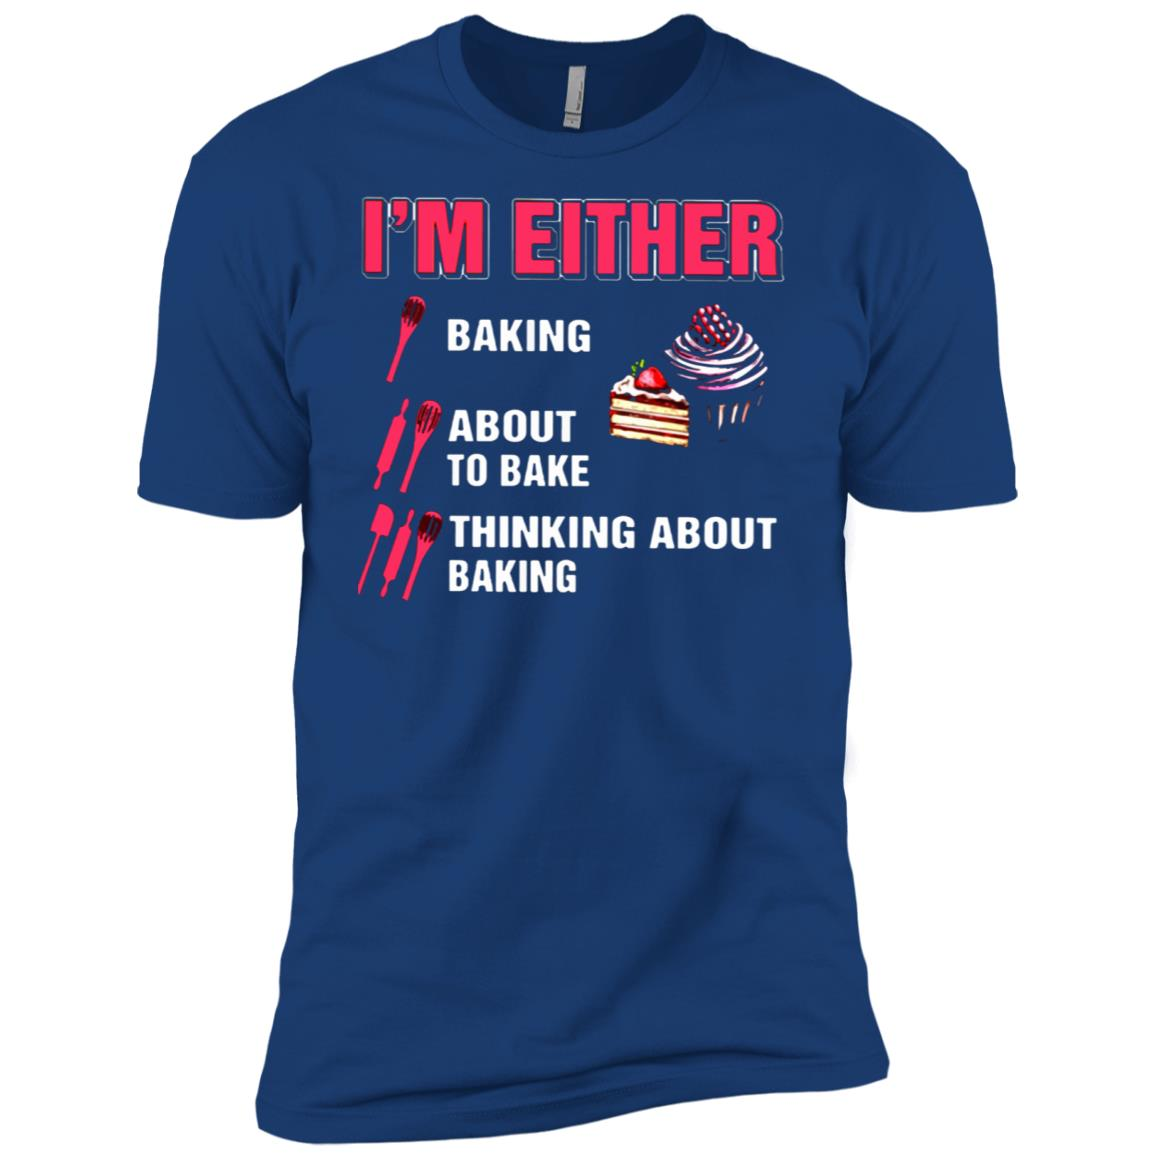 I'm Either Baking About To Bake Thinking About Baking Men Short Sleeve T-Shirt